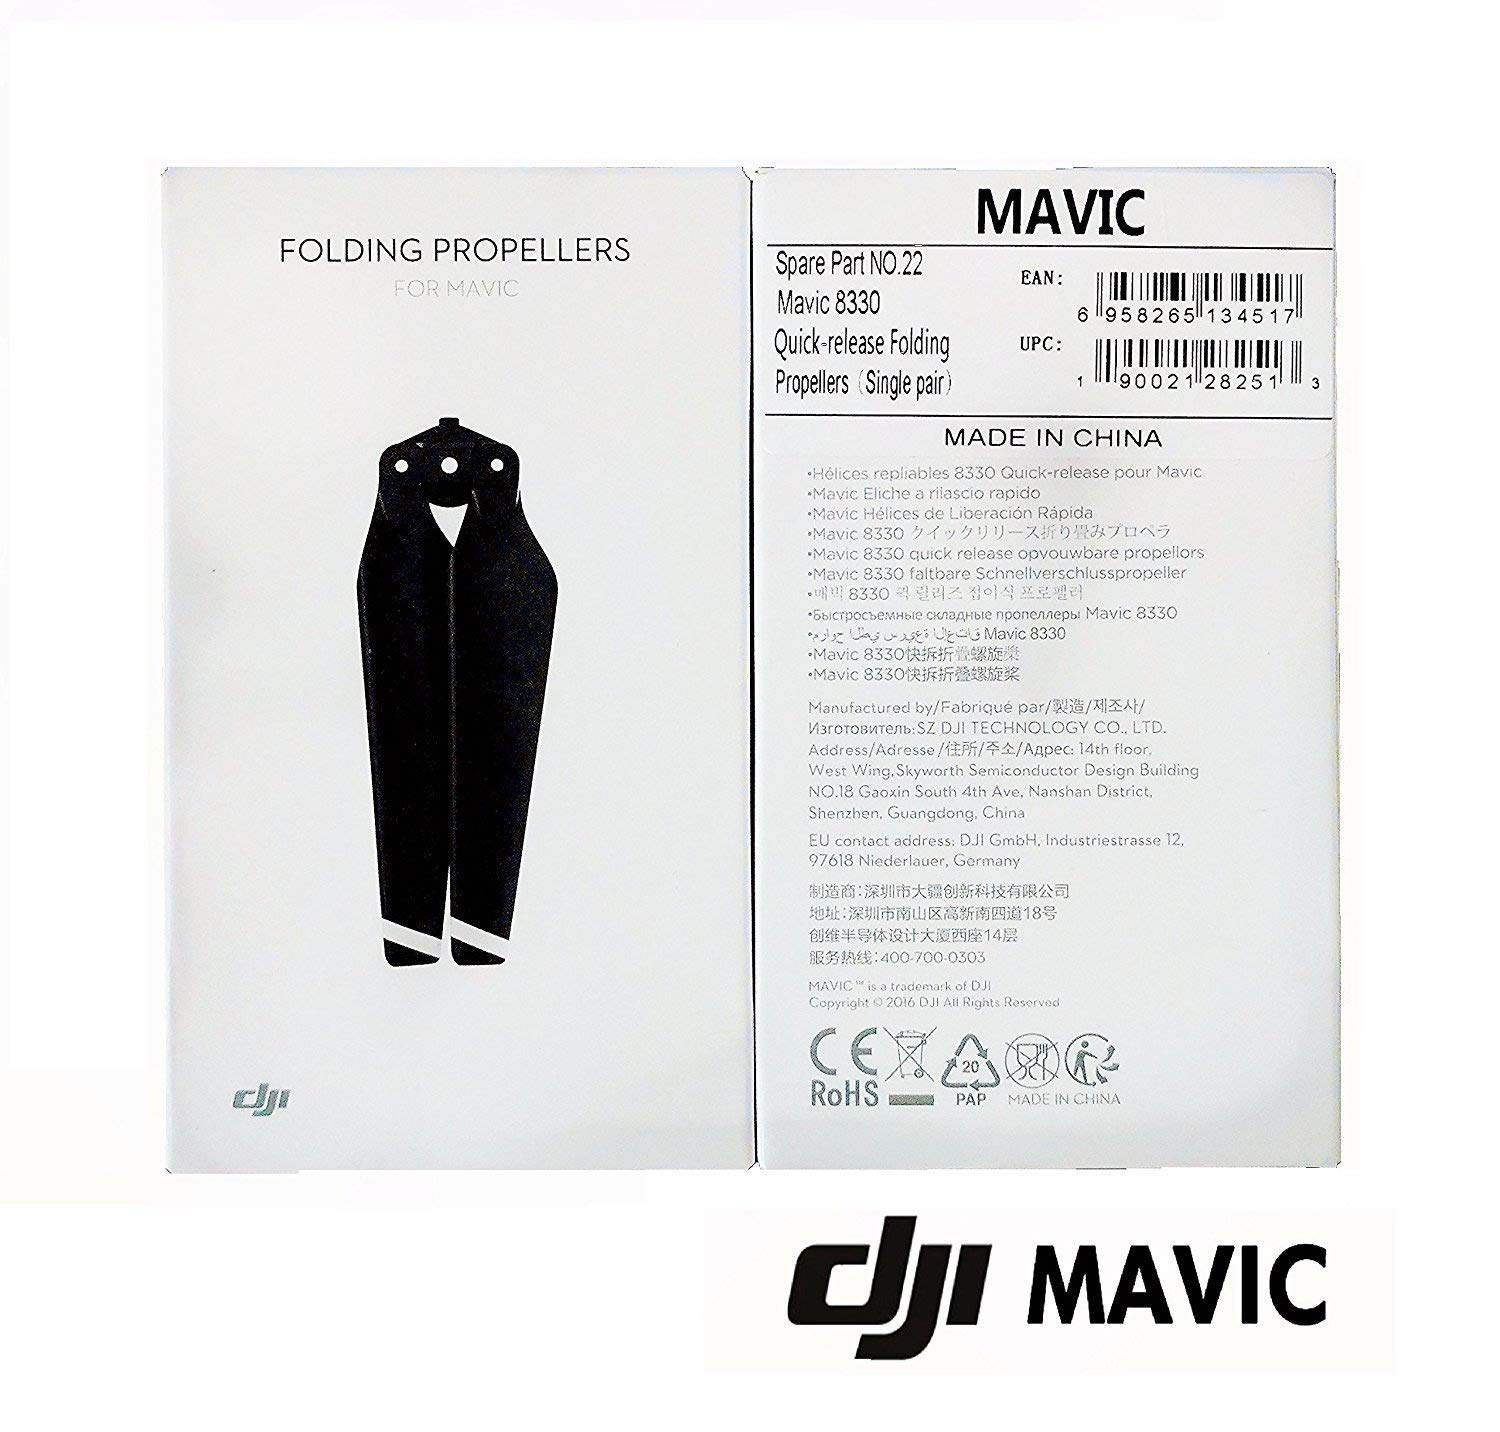 2 Sets Of Dji 8330 Quick Release Folding Propellers For Mavic Drone Cppt000578 Edigitalusa Microfiber Cleaning Cloth Electronics